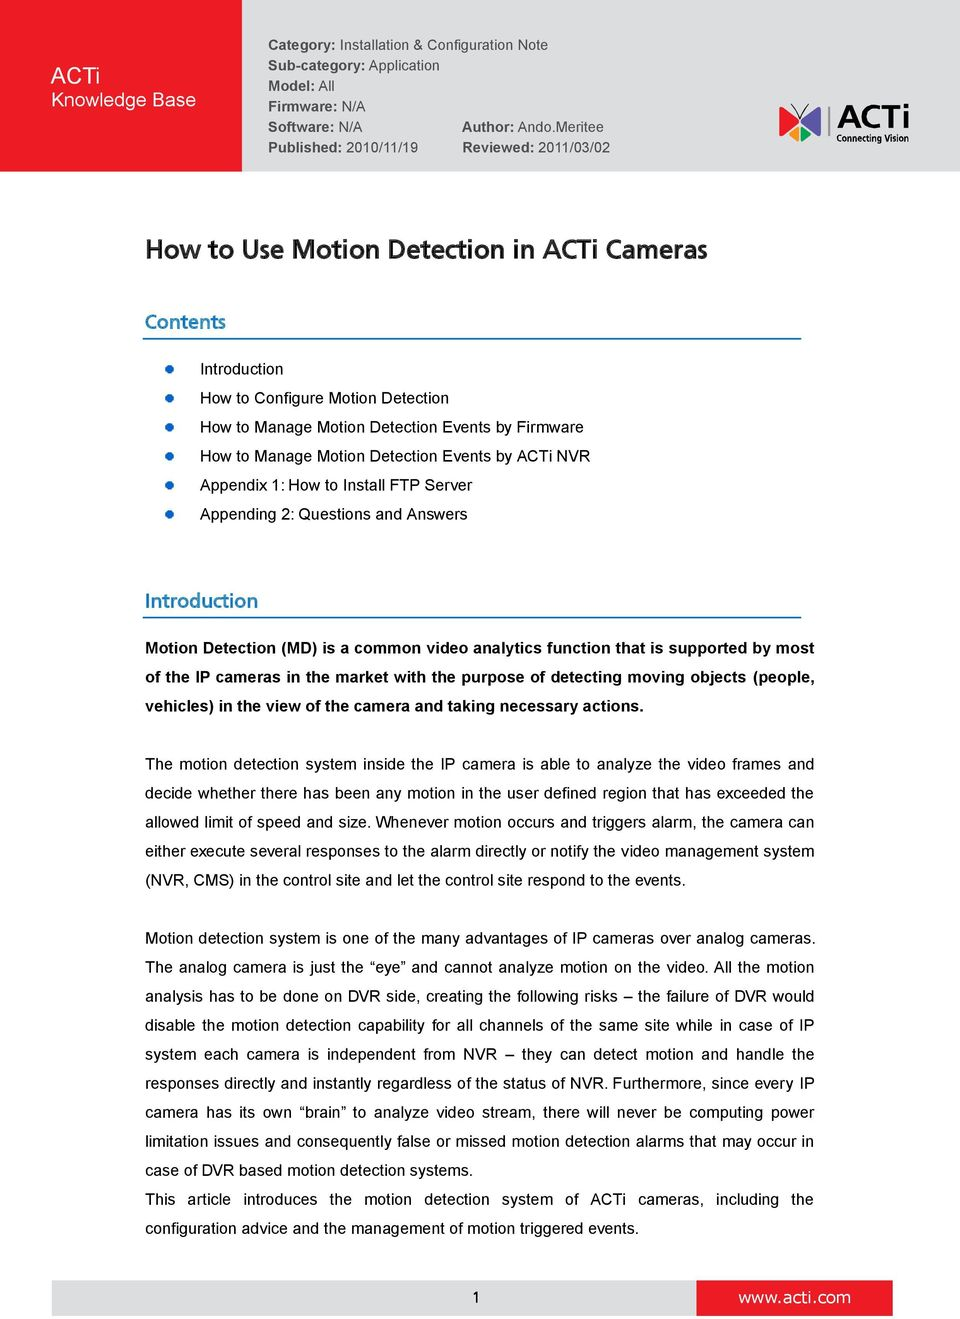 Firmware How to Manage Motion Detection Events by ACTi NVR Appendix 1: How to Install FTP Server Appending 2: Questions and Answers Introduction Motion Detection (MD) is a common video analytics